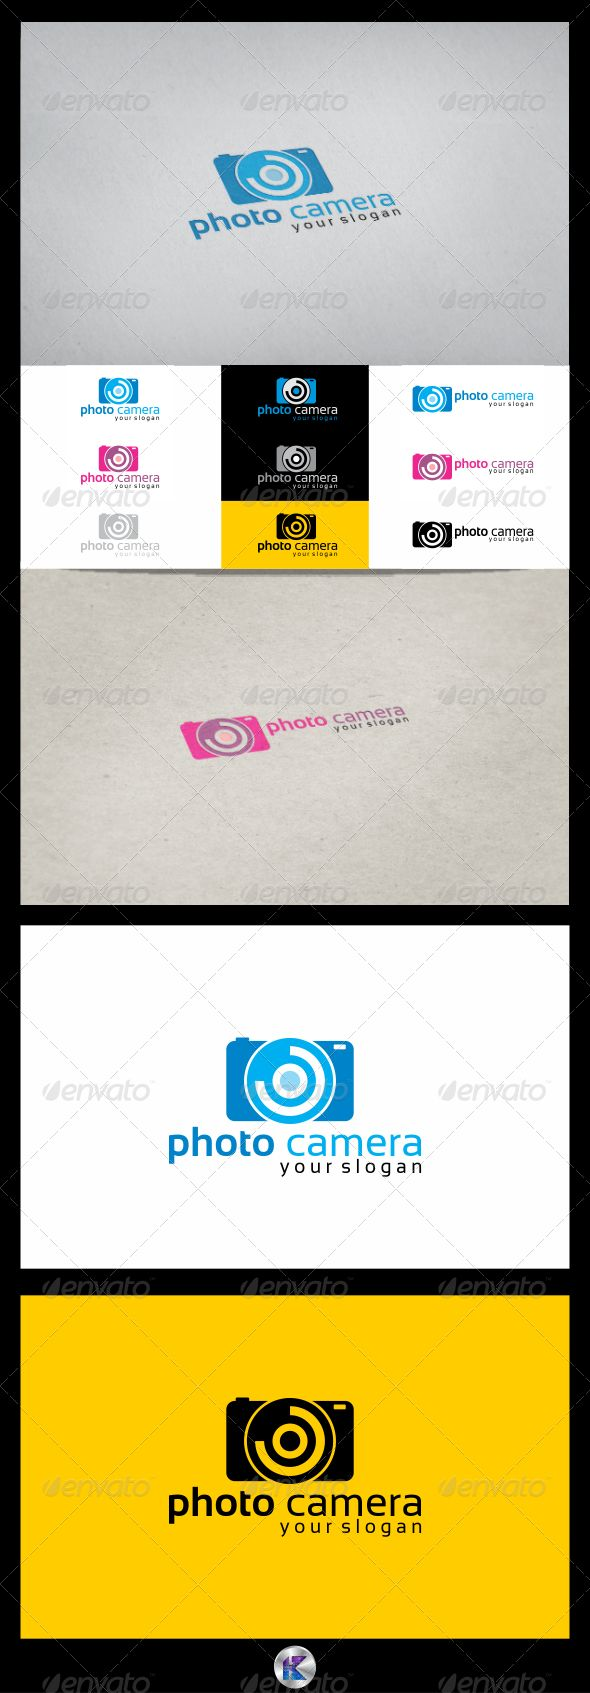 Camera Company Logo Photo camera logo template